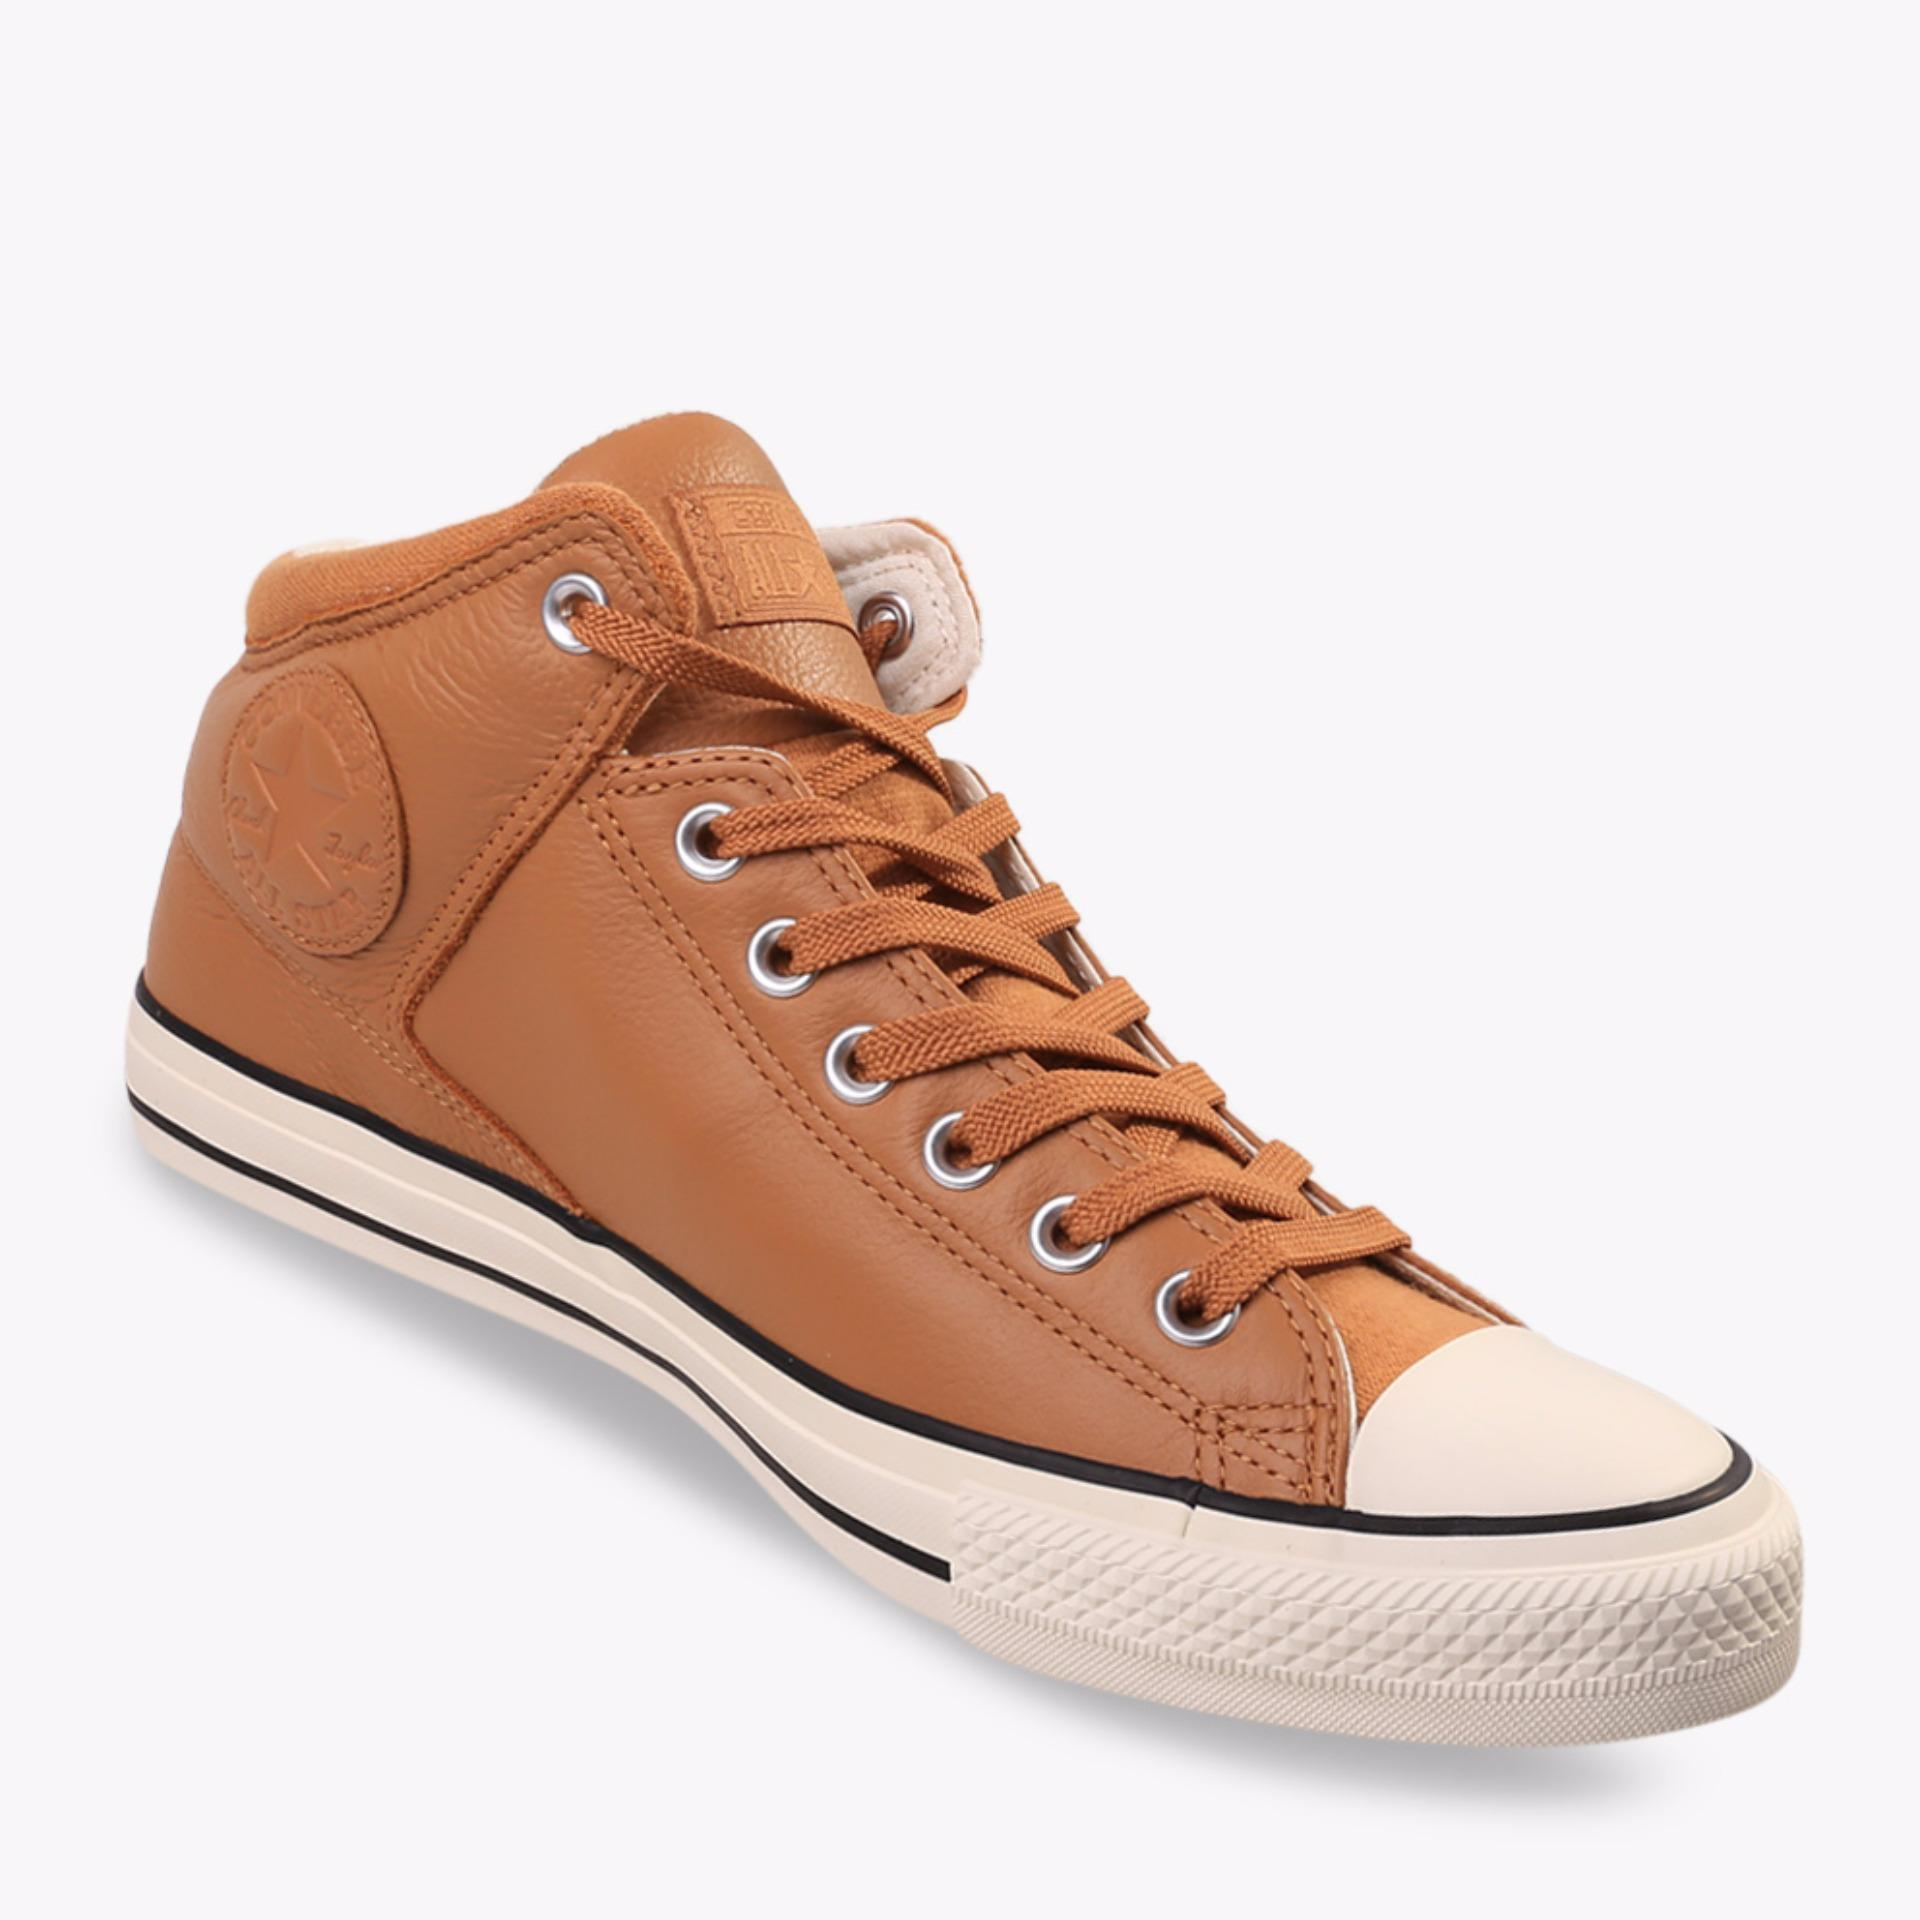 Ulasan Mengenai Converse Chuck Taylor All Star High Stret Men S Sneakers Shoes Cokelat